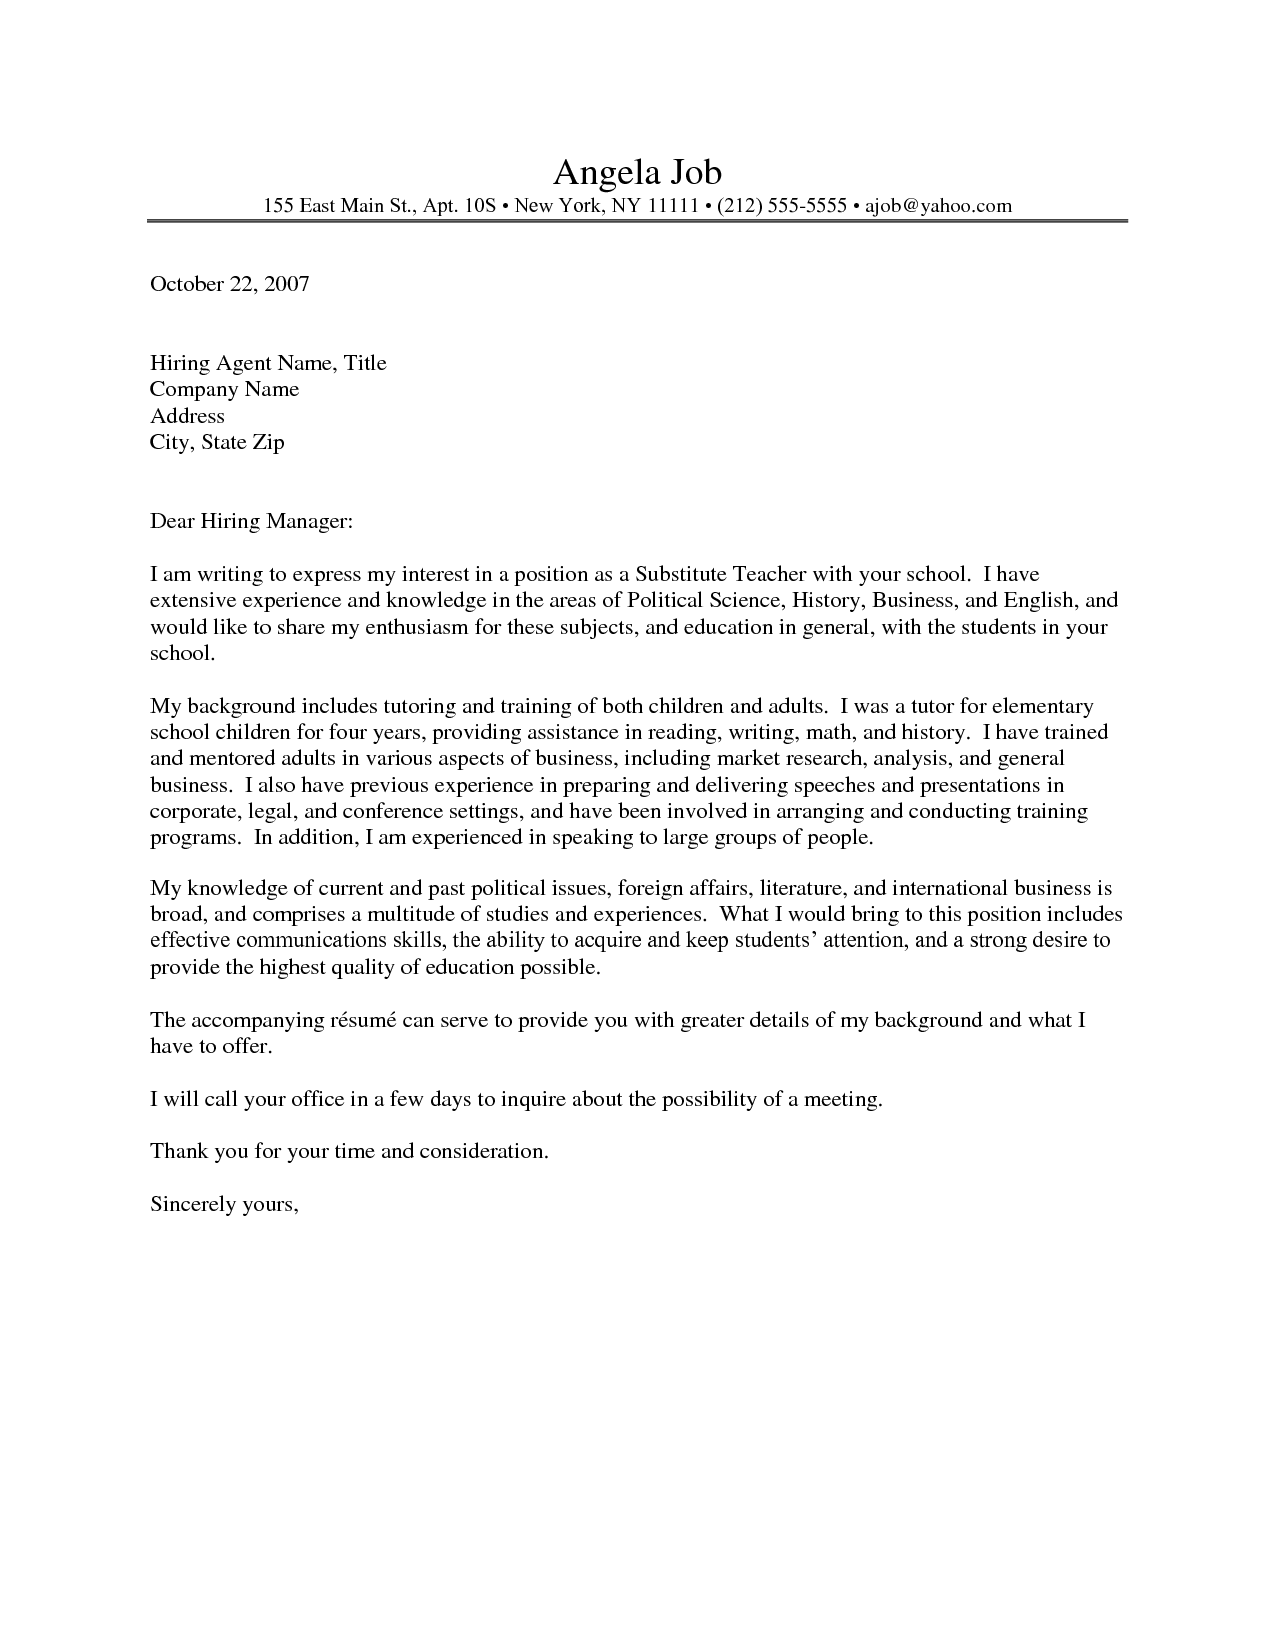 School Teacher Cover Letter Letters Sample Application Example